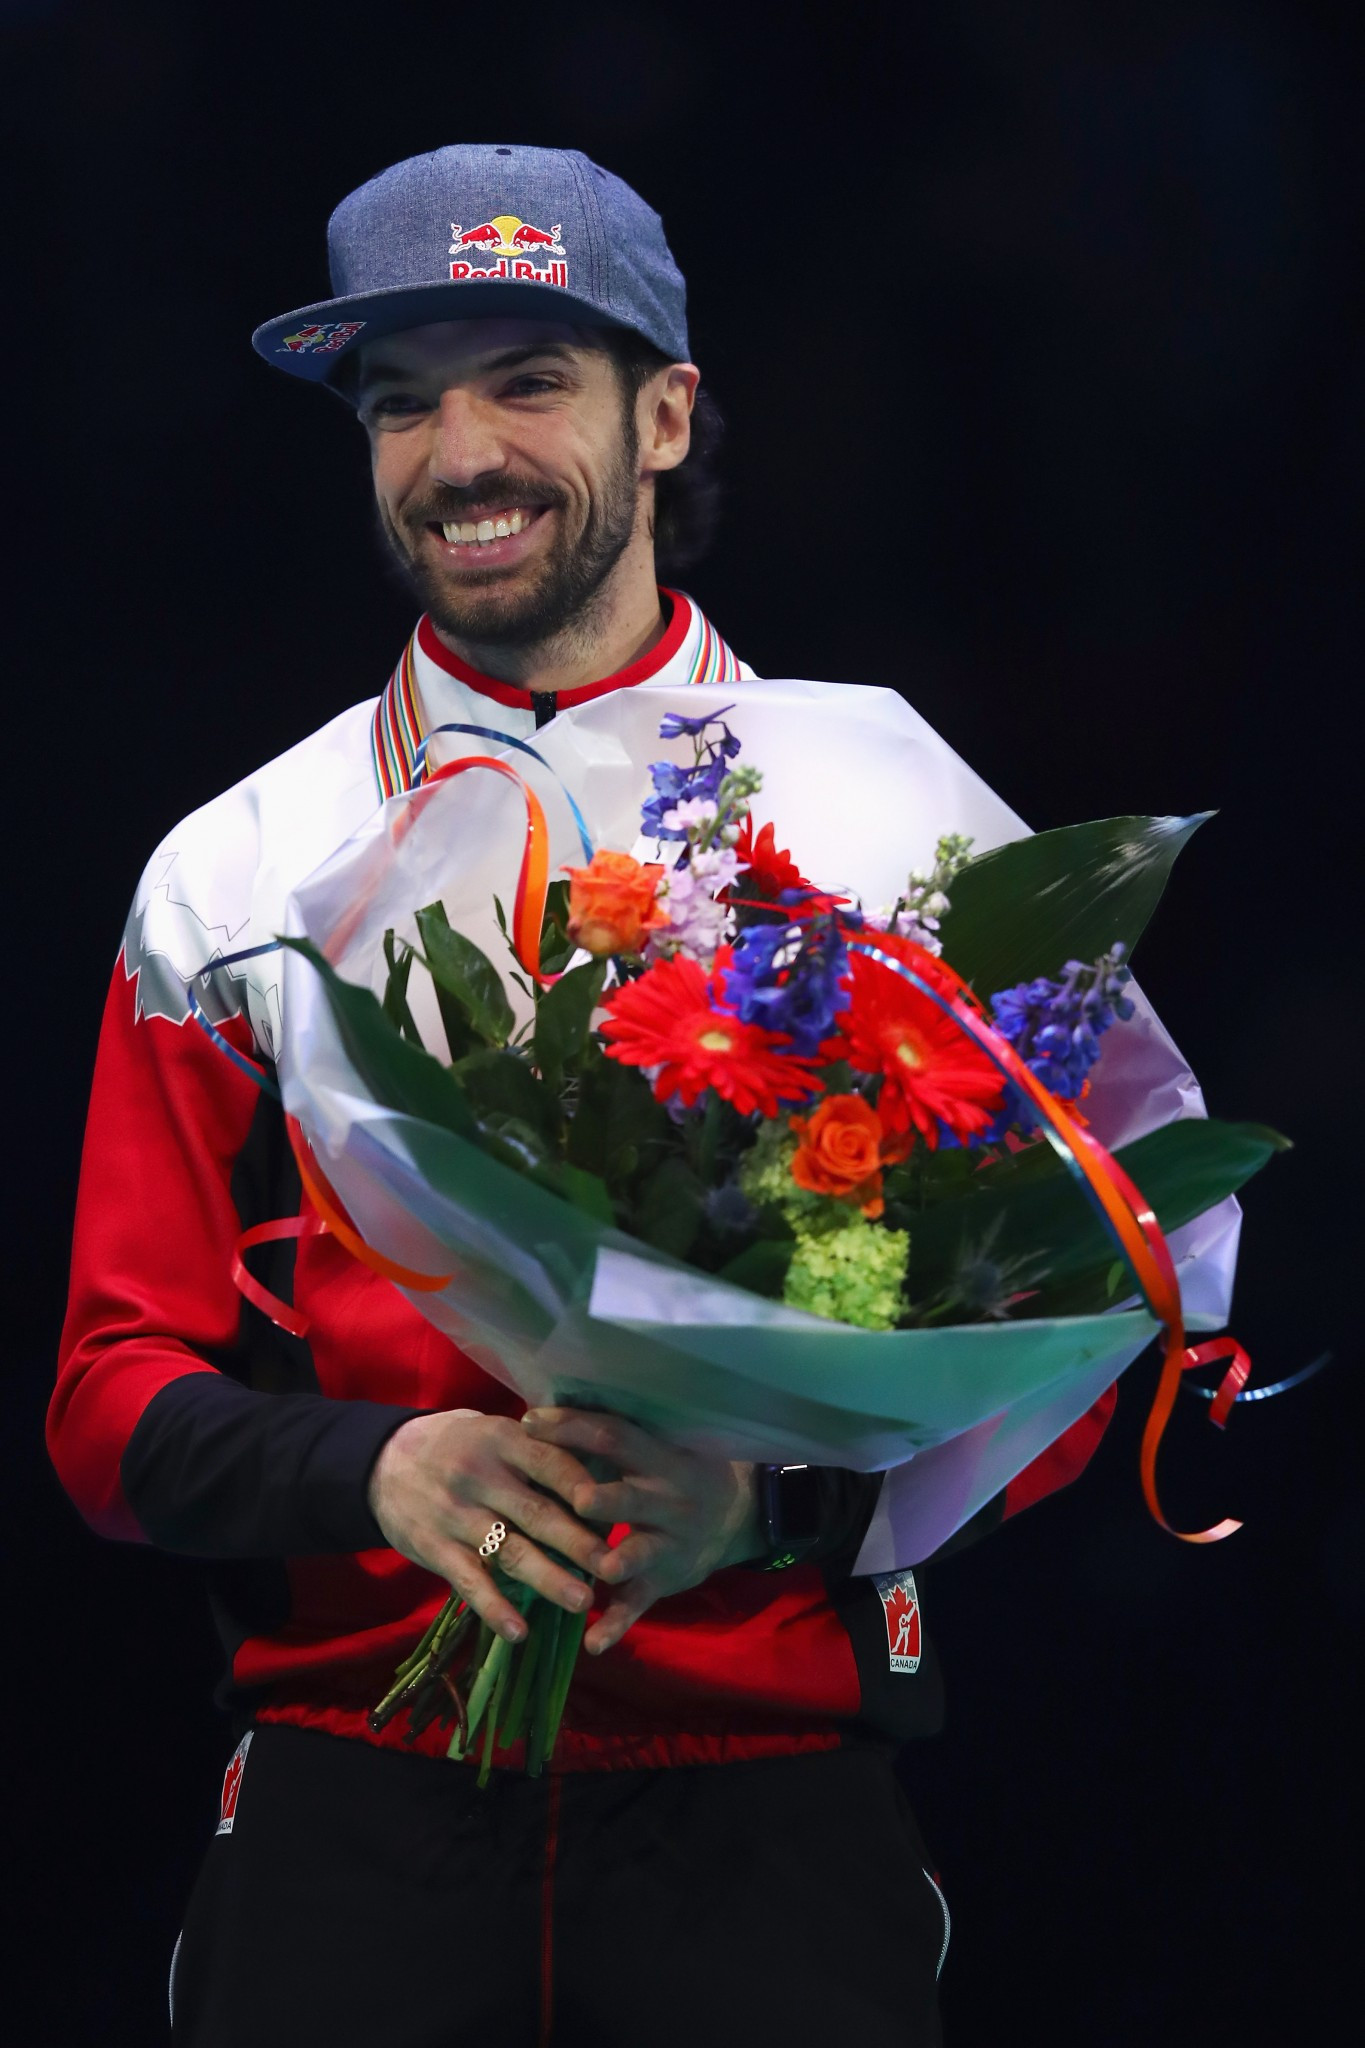 Charles Hamelin has qualified for the Pyeongchang 2018 Winter Olympic Games ©Getty Images